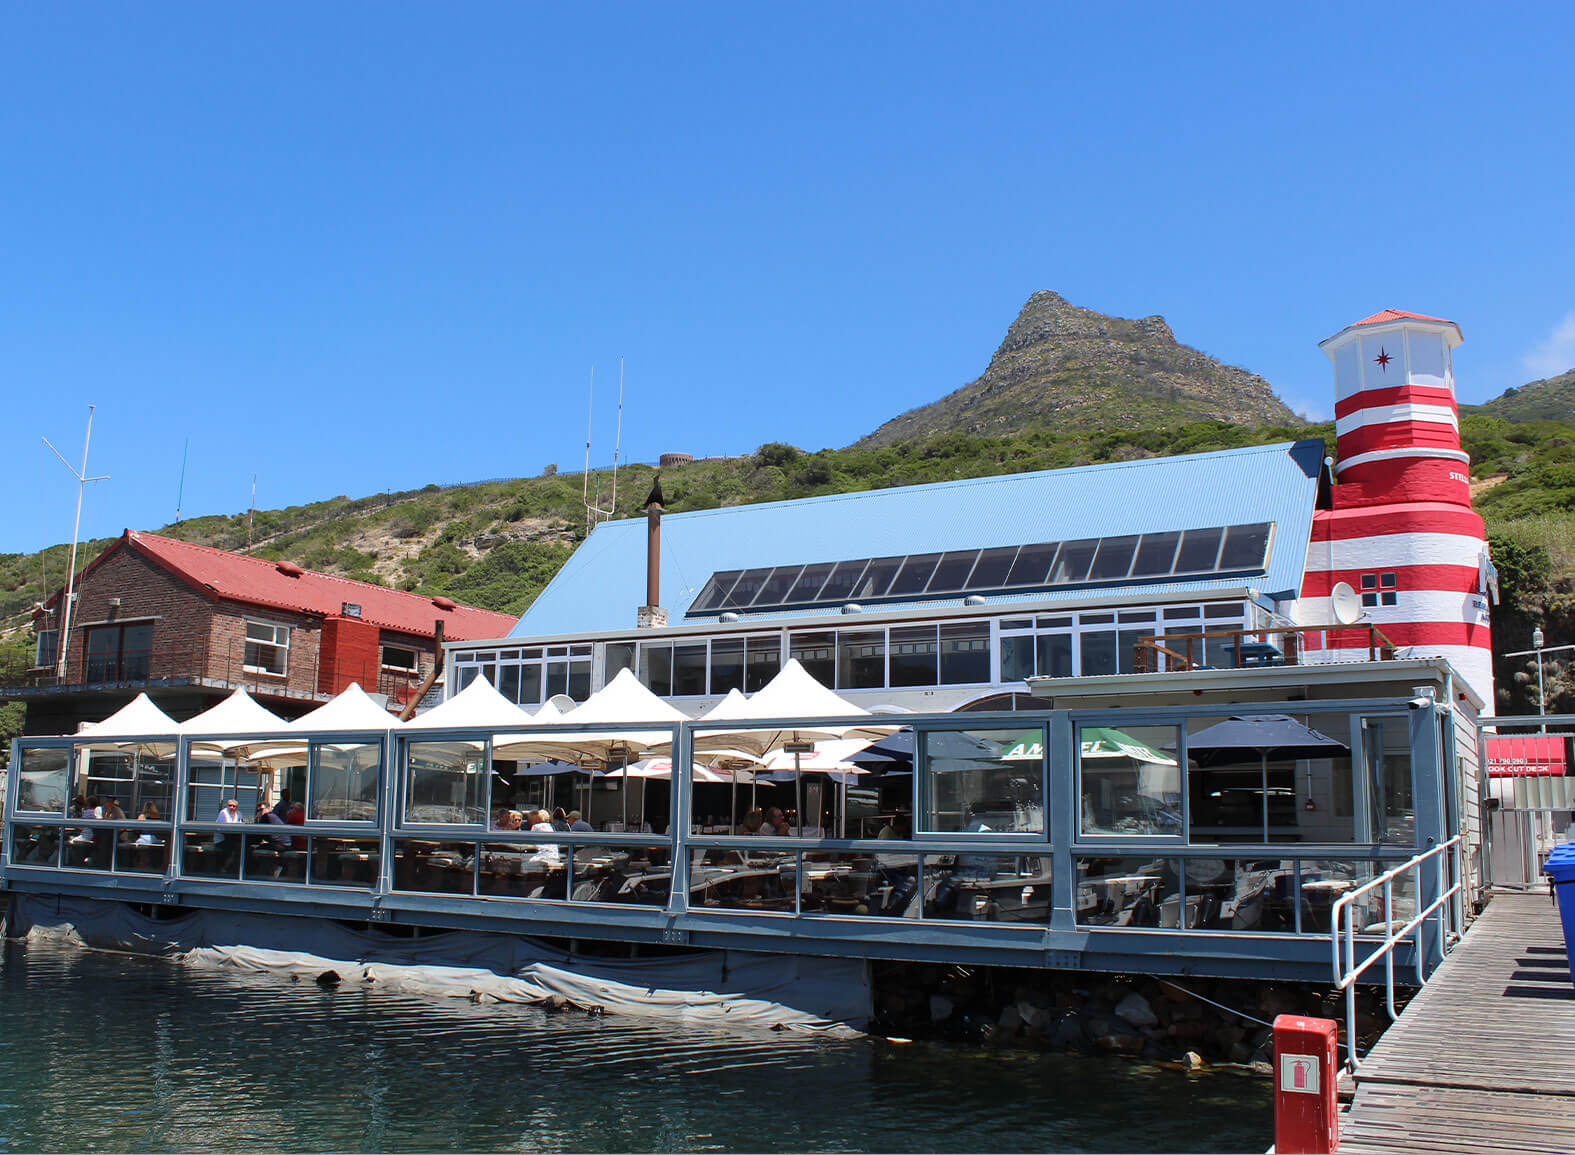 The Lookout Hout Bay